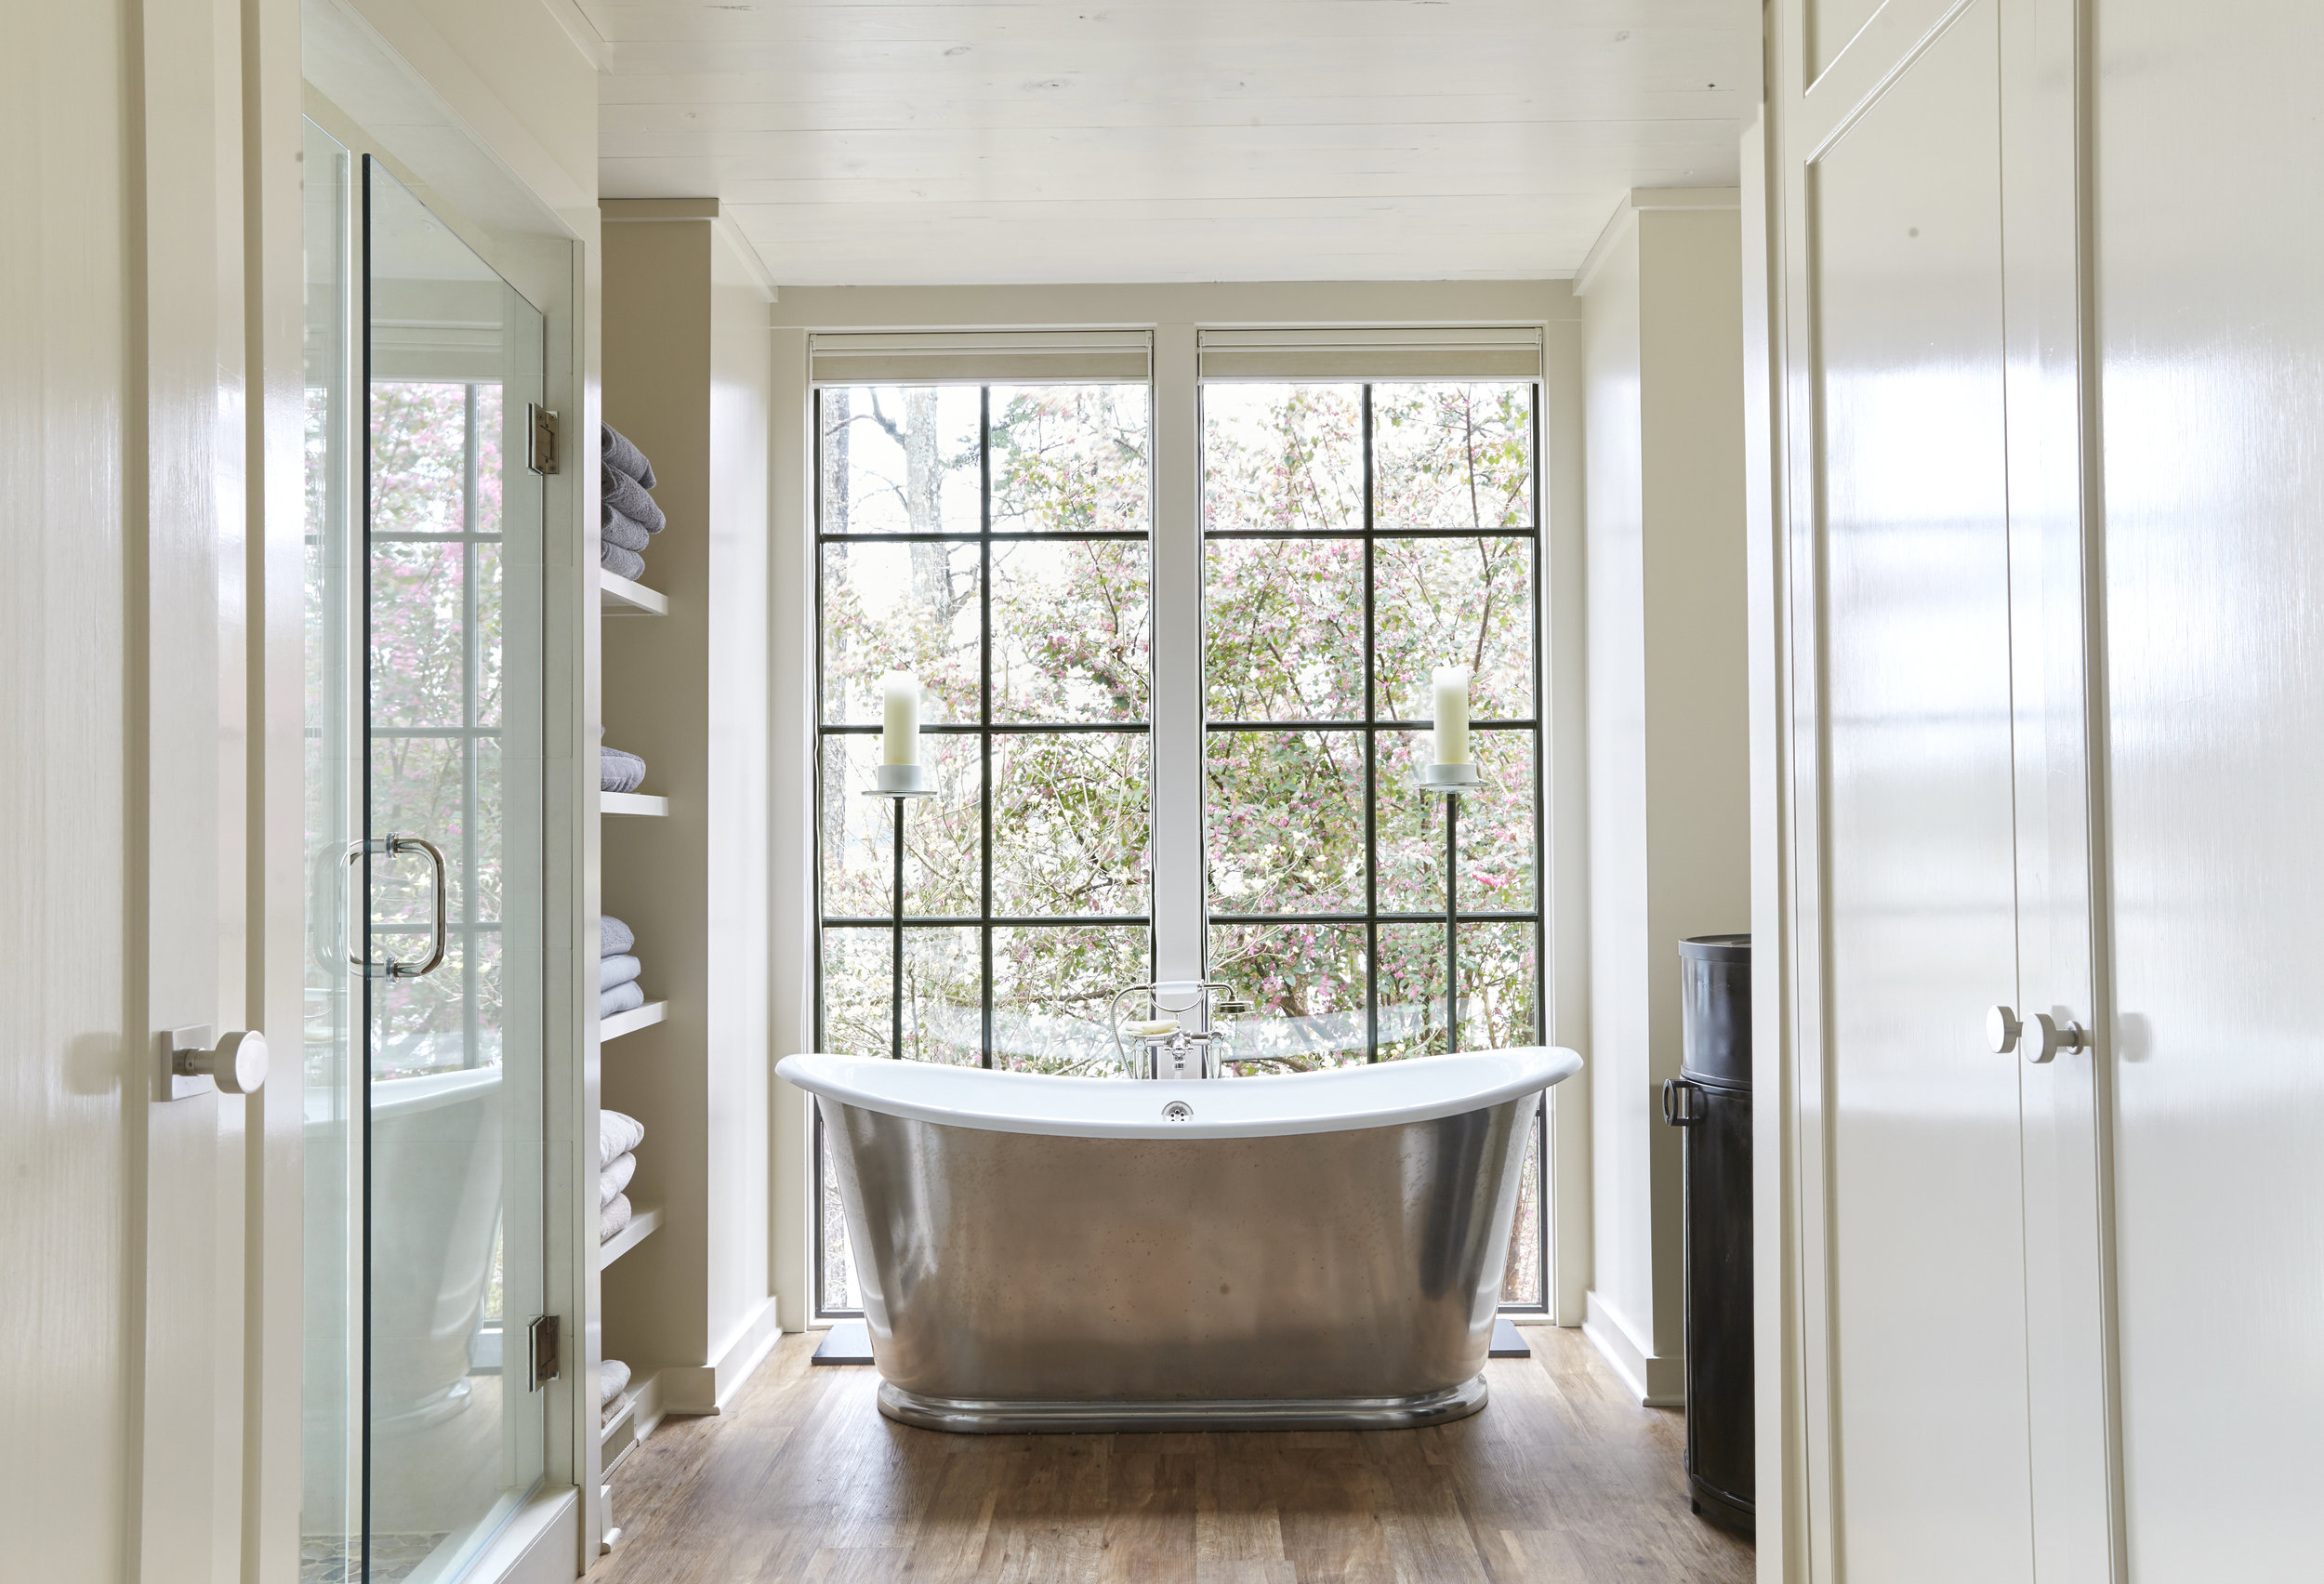 Seven Sticks Lake House - A Renovation and Addition to a Lake House -Lewis Smith Lake, AlabamaInterior Design: Richard Tubbs Interiors- Richard TubbContractor: Russell Building Company-Brook RussellBathroom Hardware: Waterworks